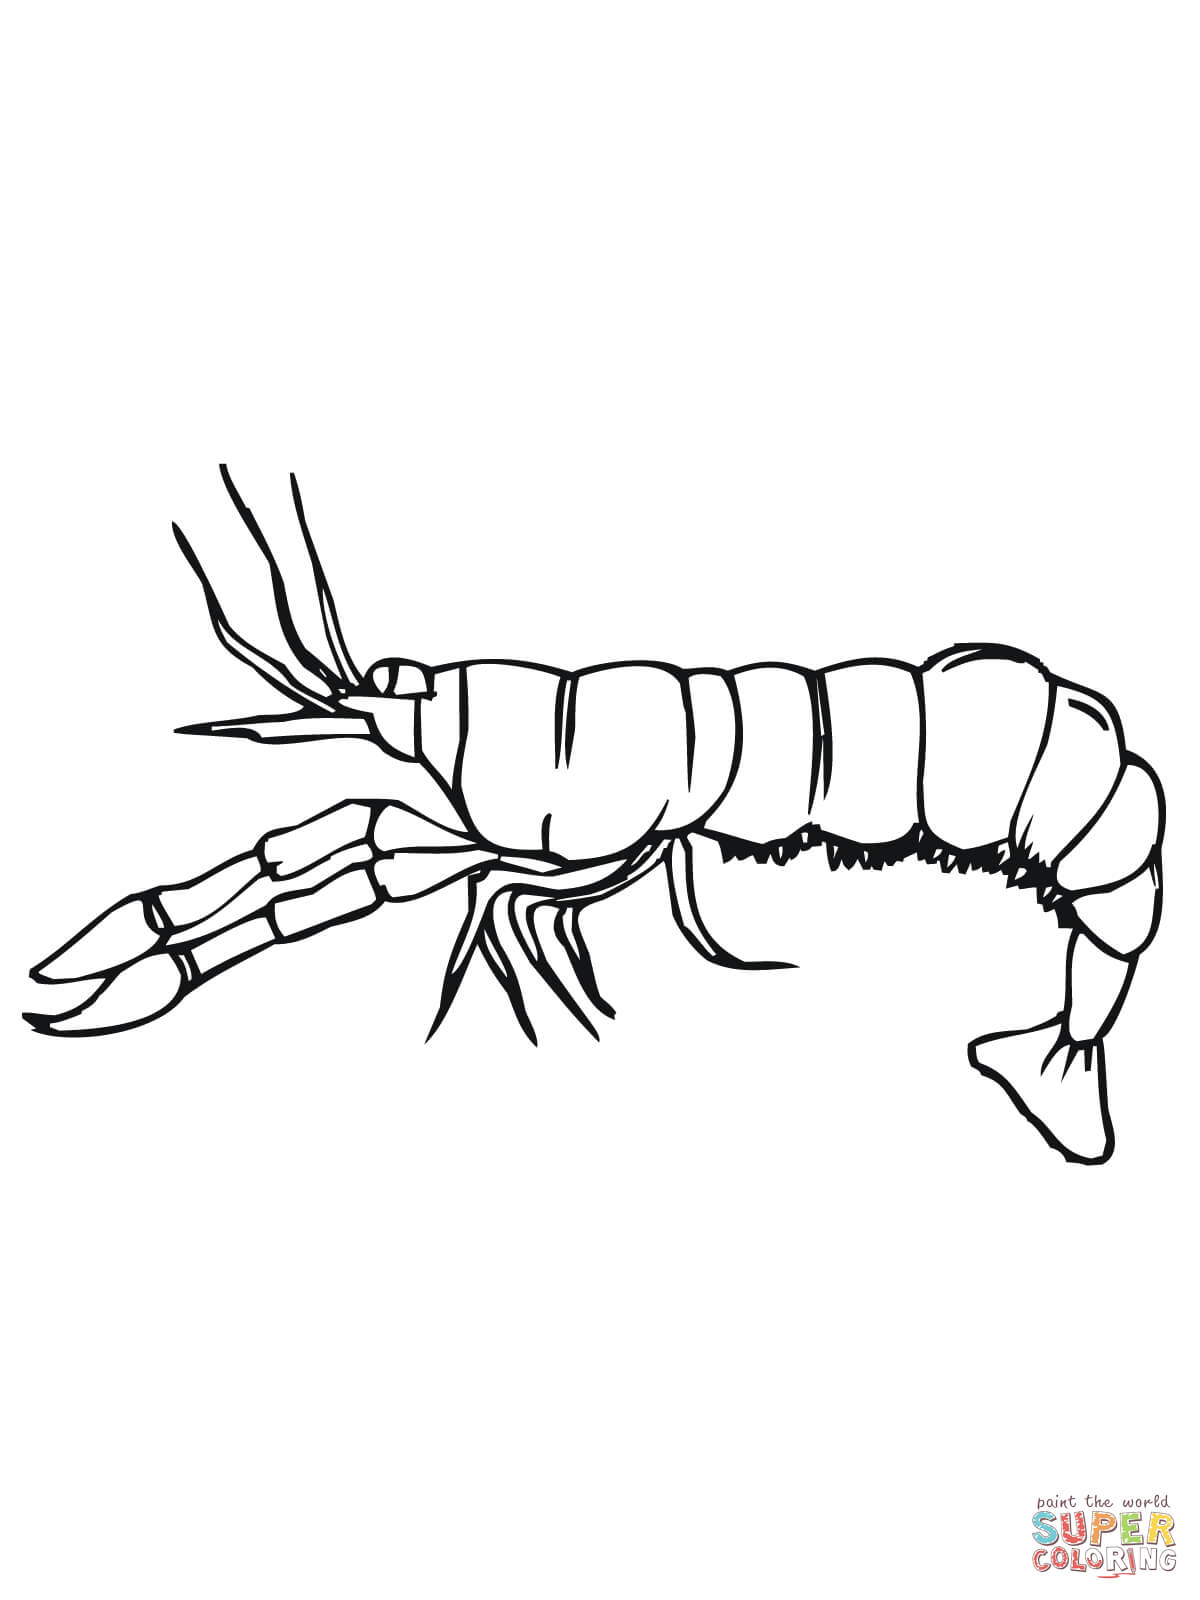 34 Label The Drawing Of The Crayfish